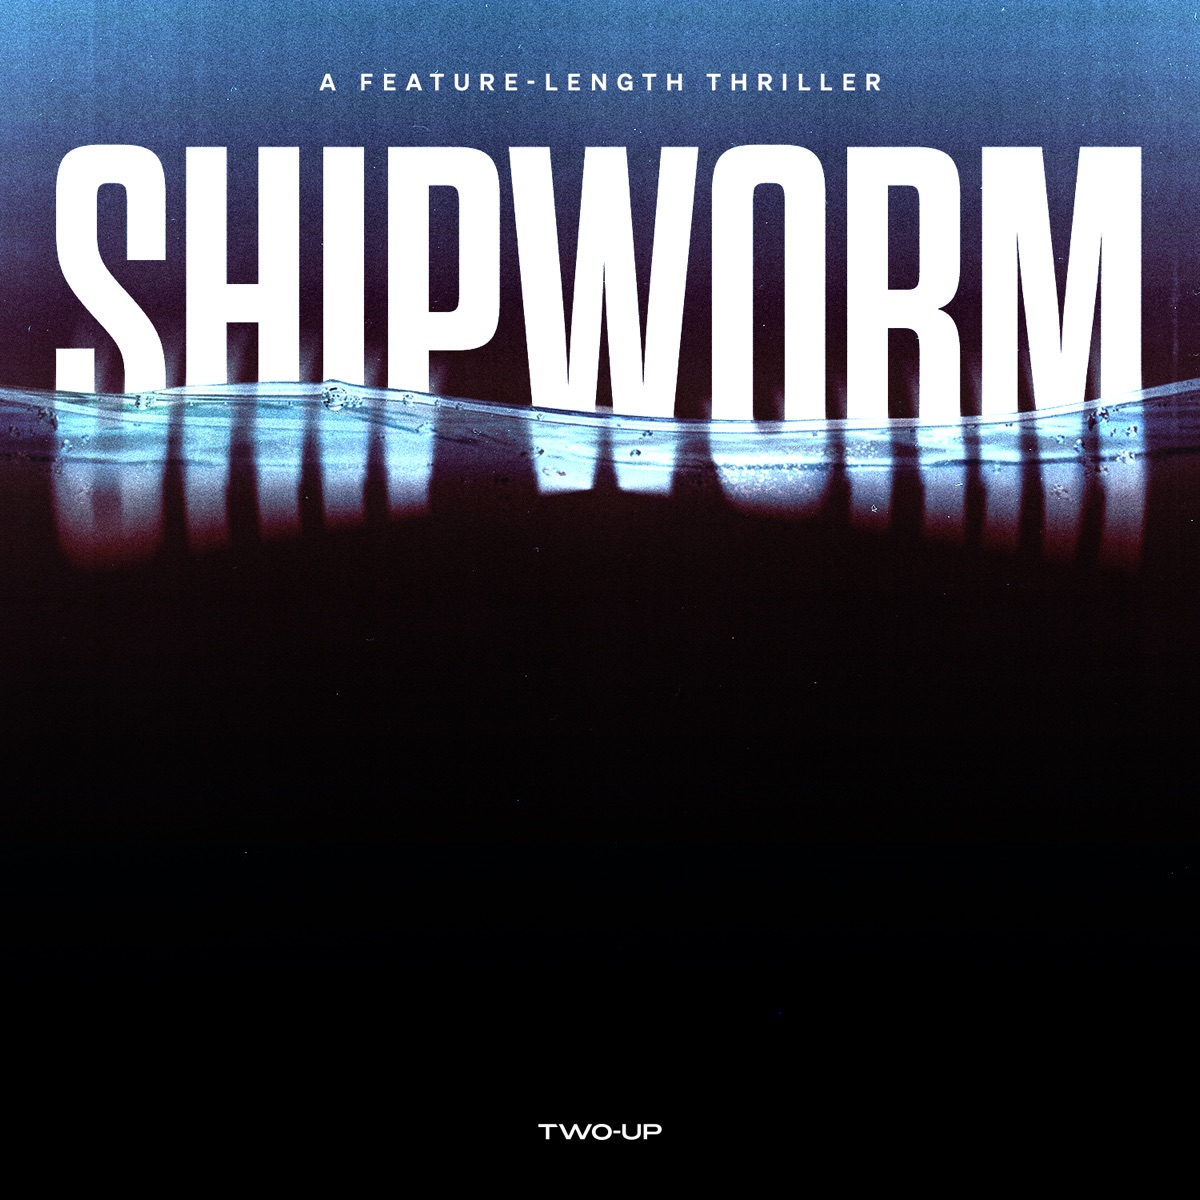 Promotional poster & cover art for SHIPWORM